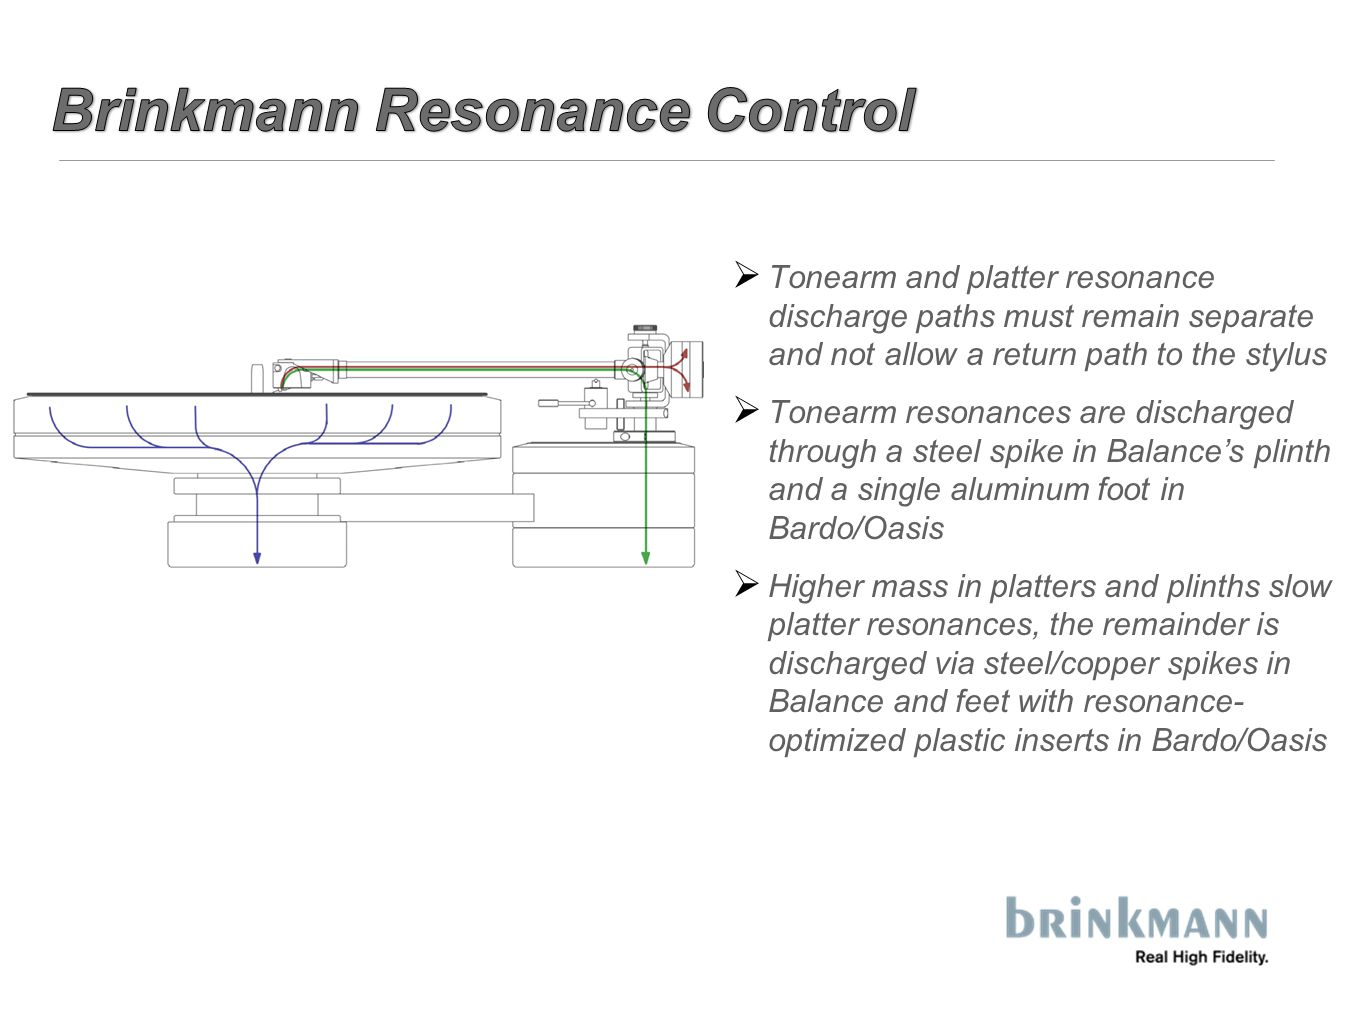  Tonearm and platter resonance discharge paths must remain separate and not allow a return path to the stylus  Tonearm resonances are discharged through a steel spike in Balance's plinth and a single aluminum foot in Bardo/Oasis  Higher mass in platters and plinths slow platter resonances, the remainder is discharged via steel/copper spikes in Balance and feet with resonance- optimized plastic inserts in Bardo/Oasis